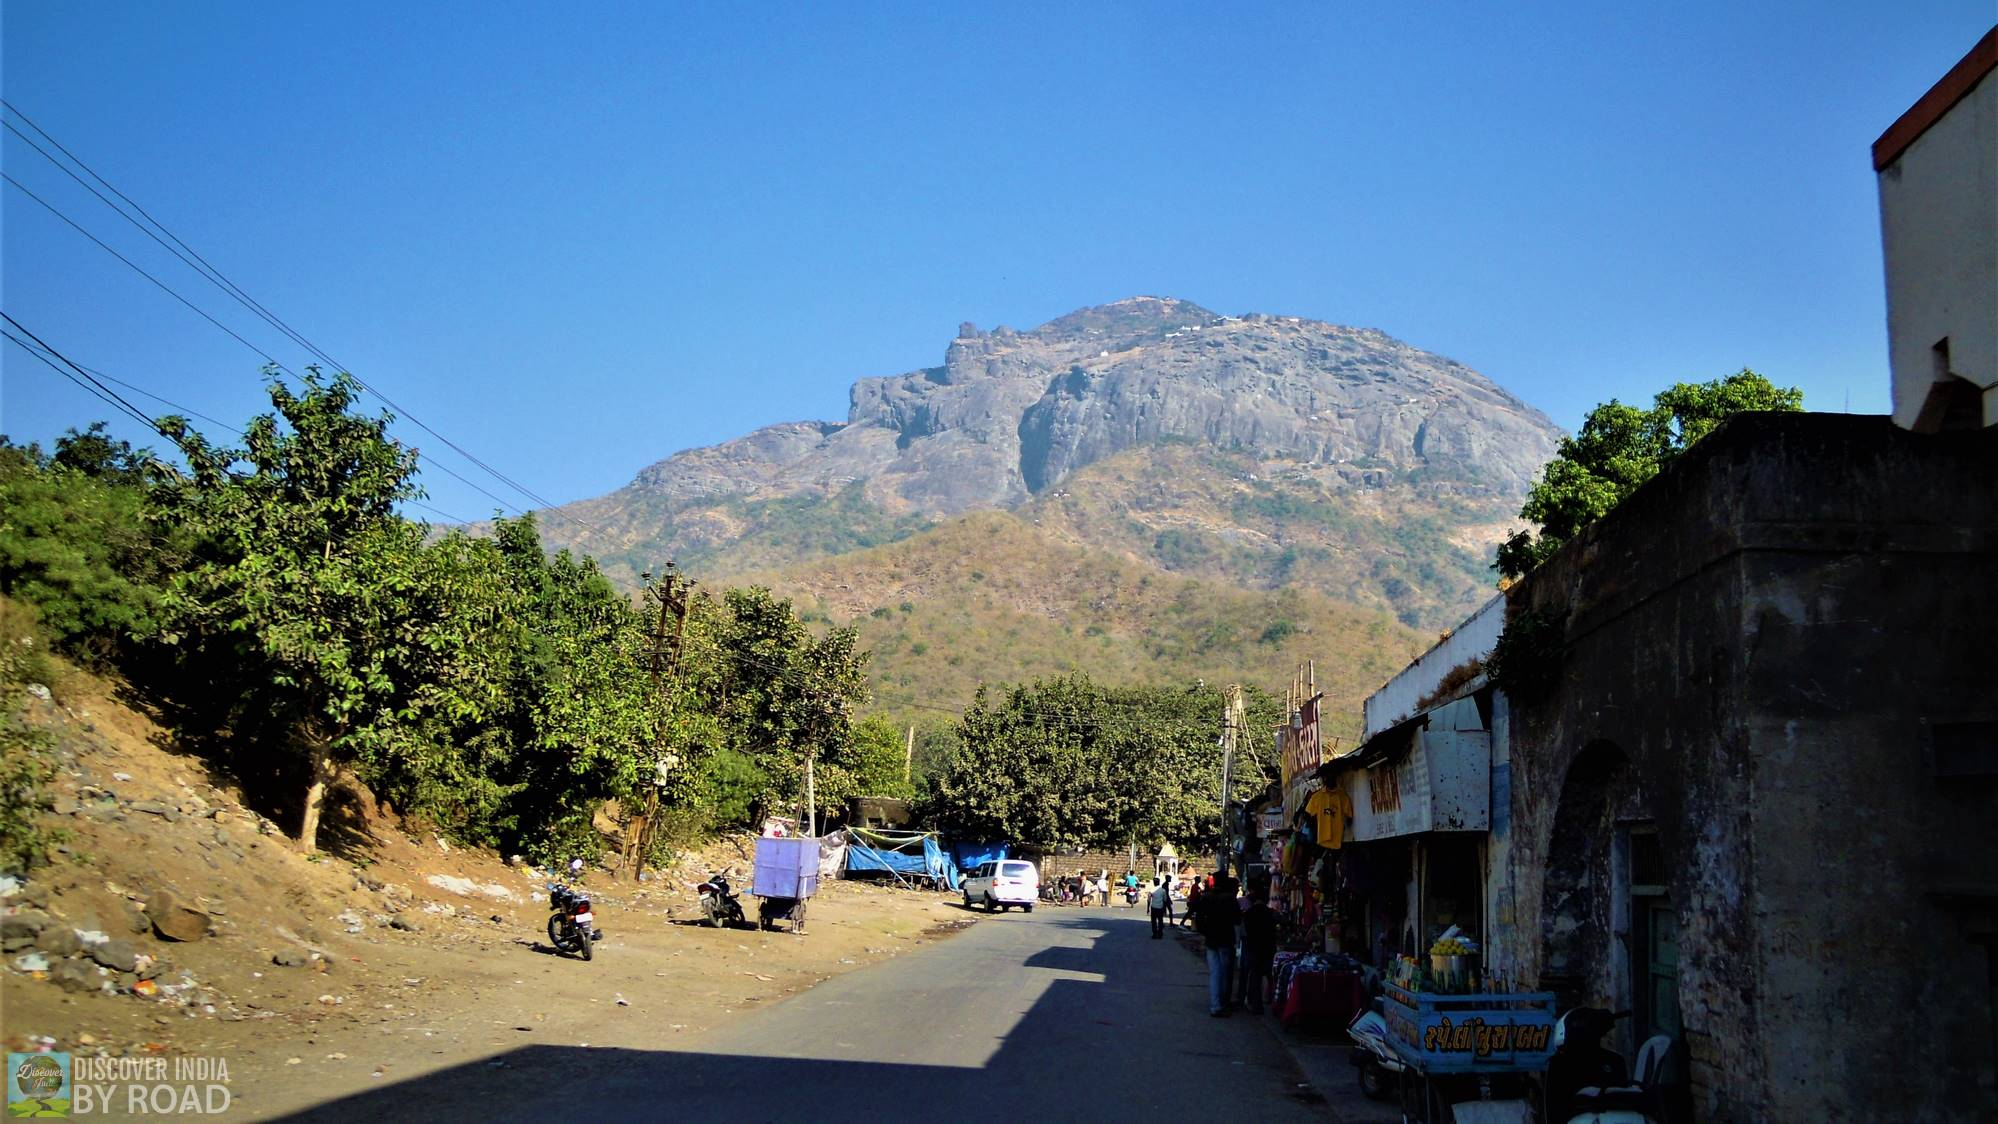 View of Girnar Peak which looks like a face of sleeping sage